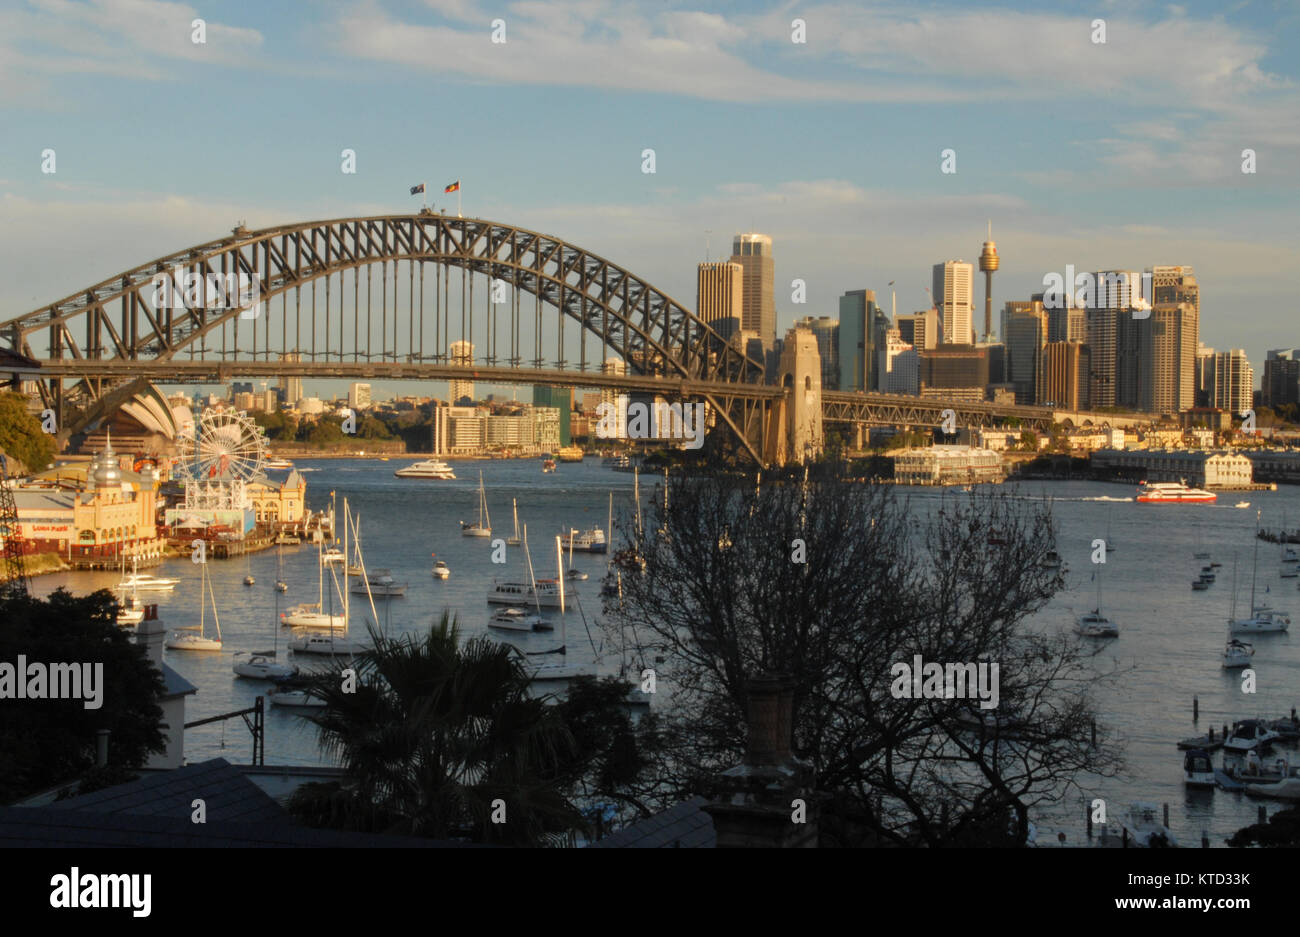 Sydney, Australia - July 4, 2016: Ships in Lavender Bay and Harbour Bridge - Stock Image